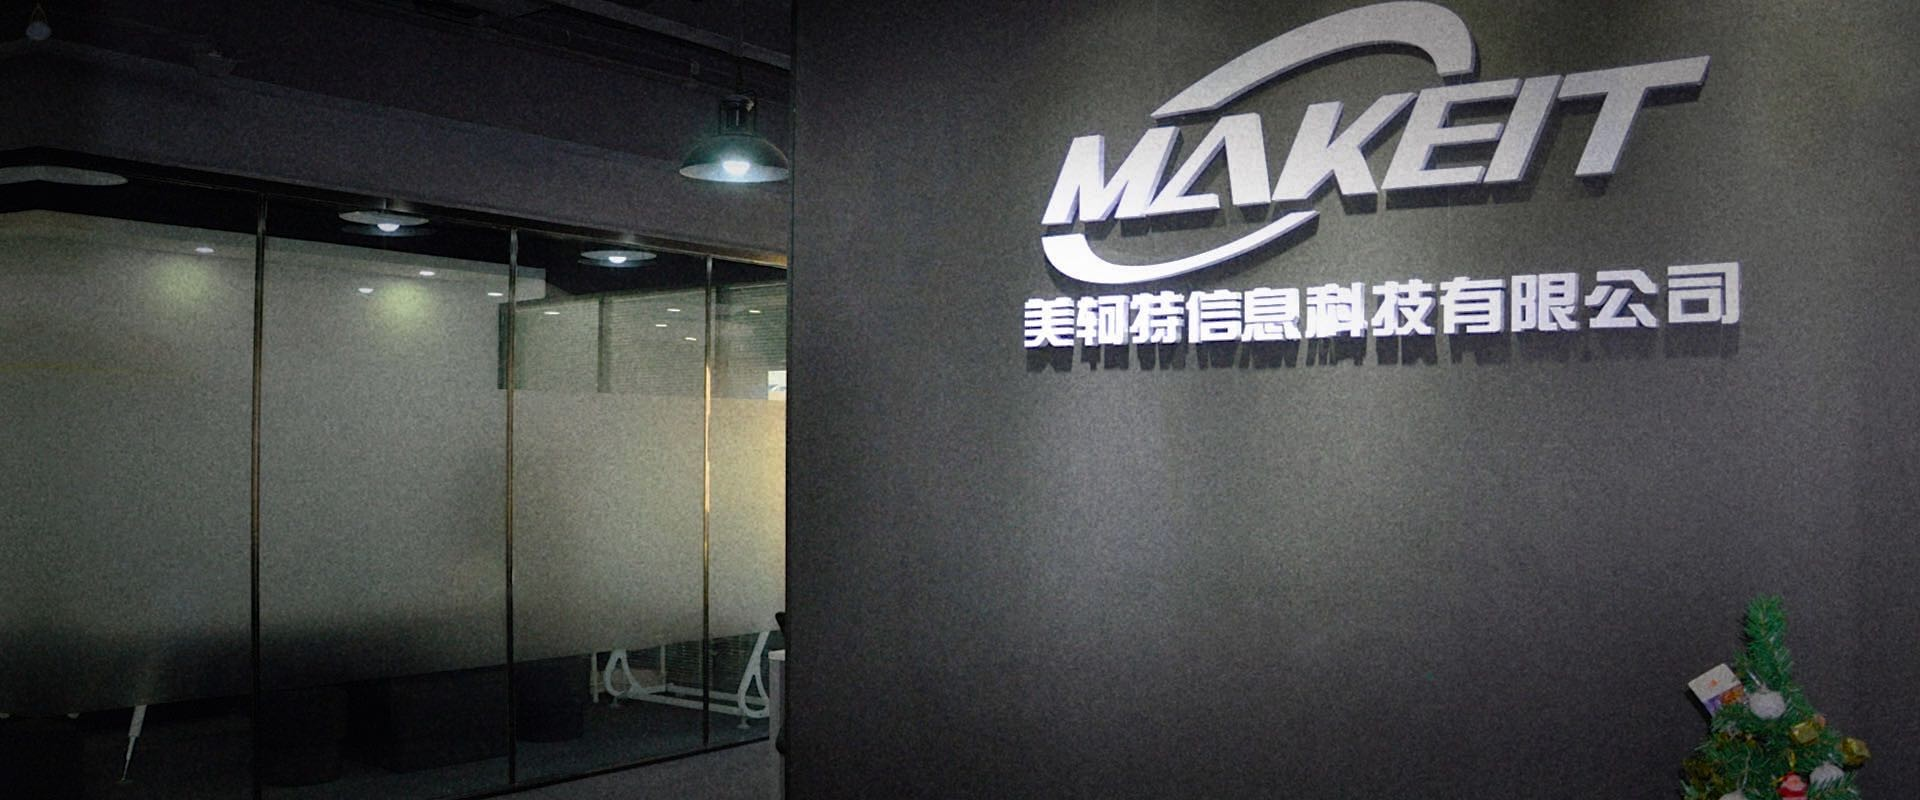 Suzhou Makeit Technology Co.,Ltd.